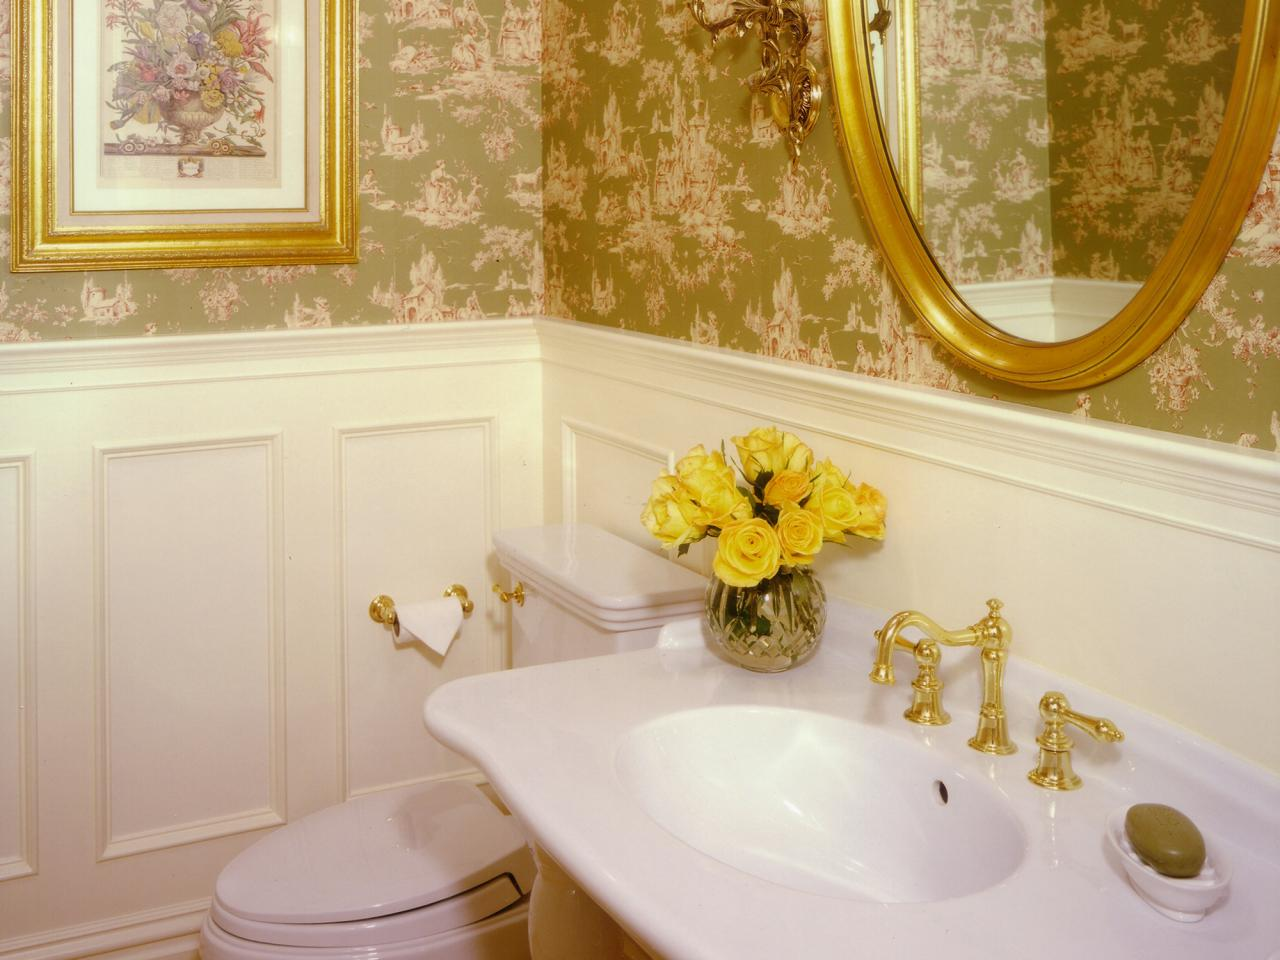 Choosing Ornate Bathroom Wall Panels